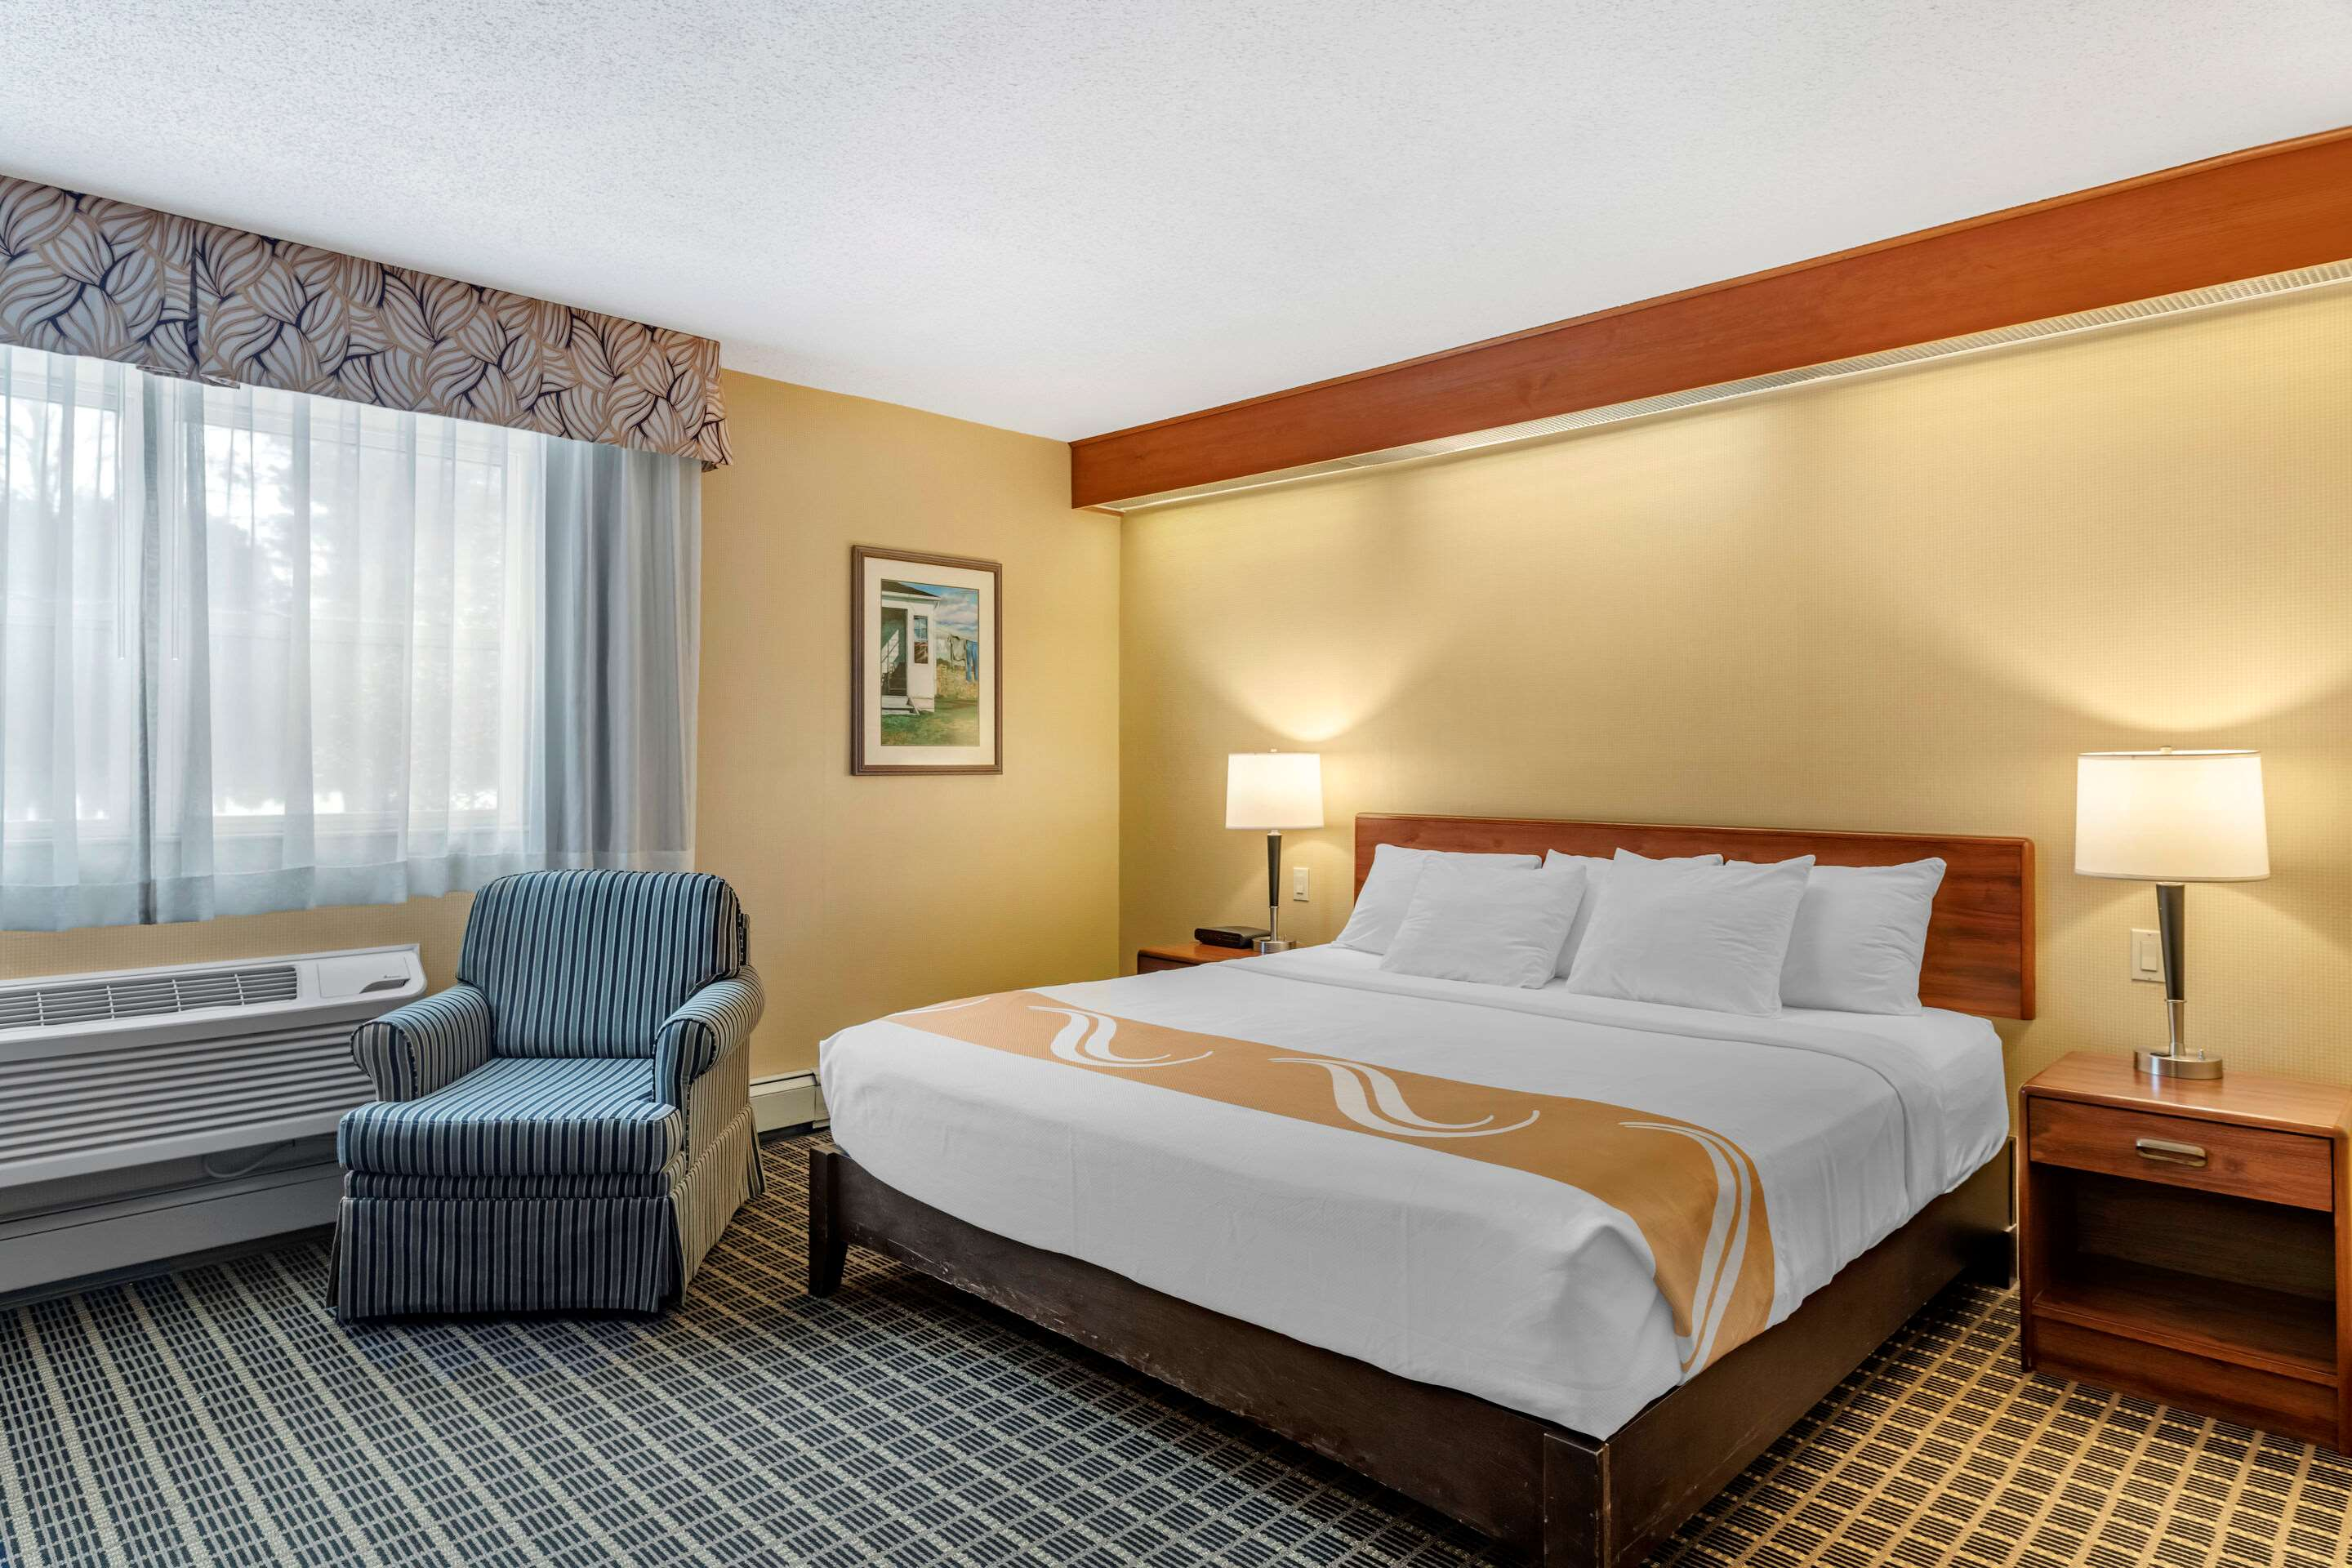 Quality Inn & Suites Garden Of The Gulf in Summerside: Guest room with king bed(s)